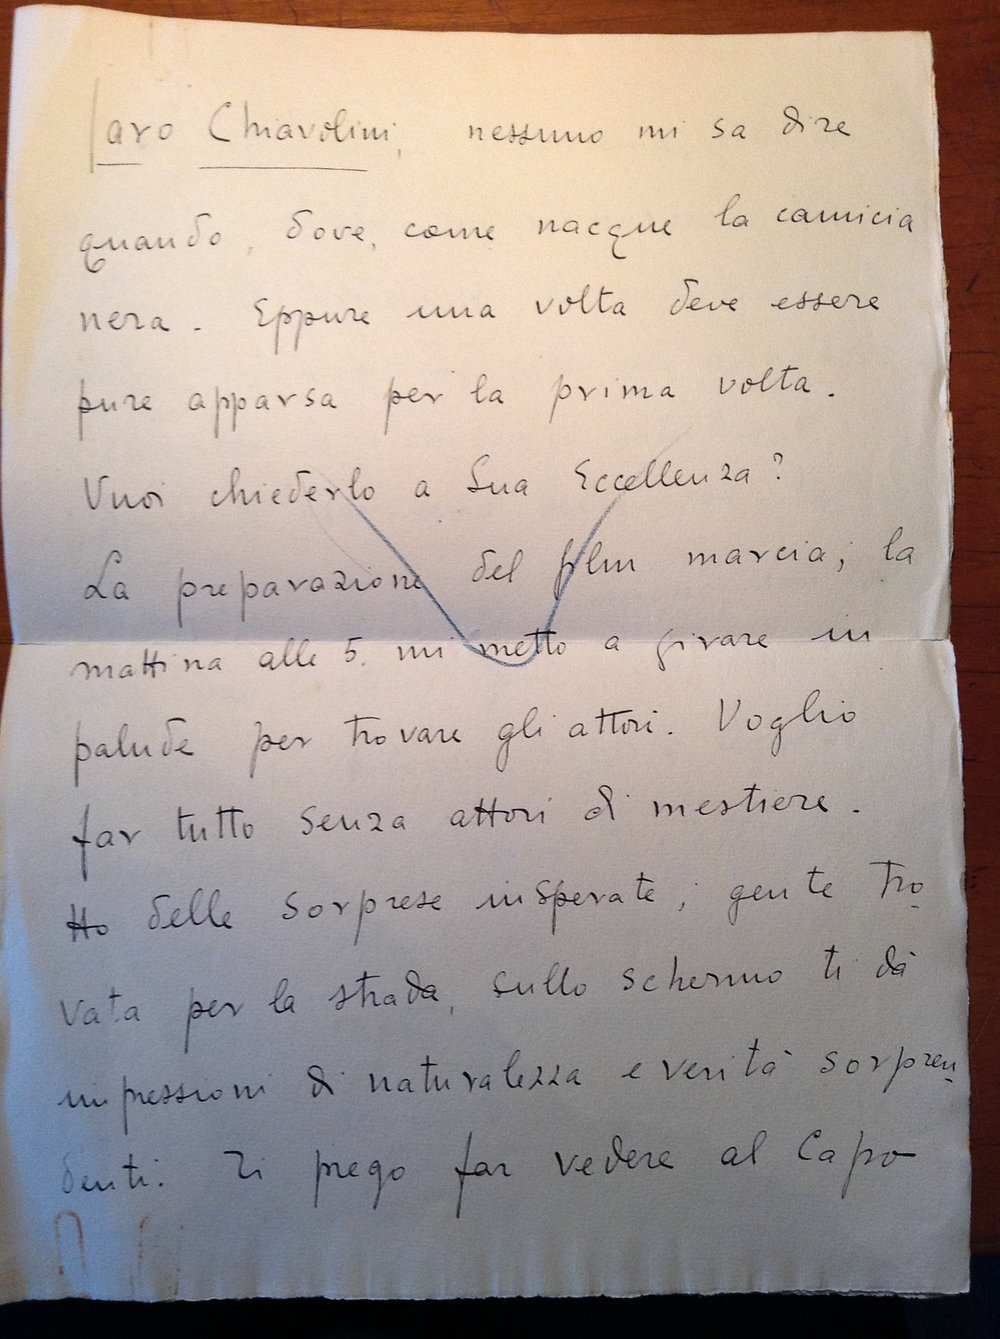 Letter to Alessandro Chiavolini from Giovacchino Forzano. Central Archives of the State, Segreteria Particolare del Duce, Carteggio Riservato, busta 85 Forzano. Property of the author.